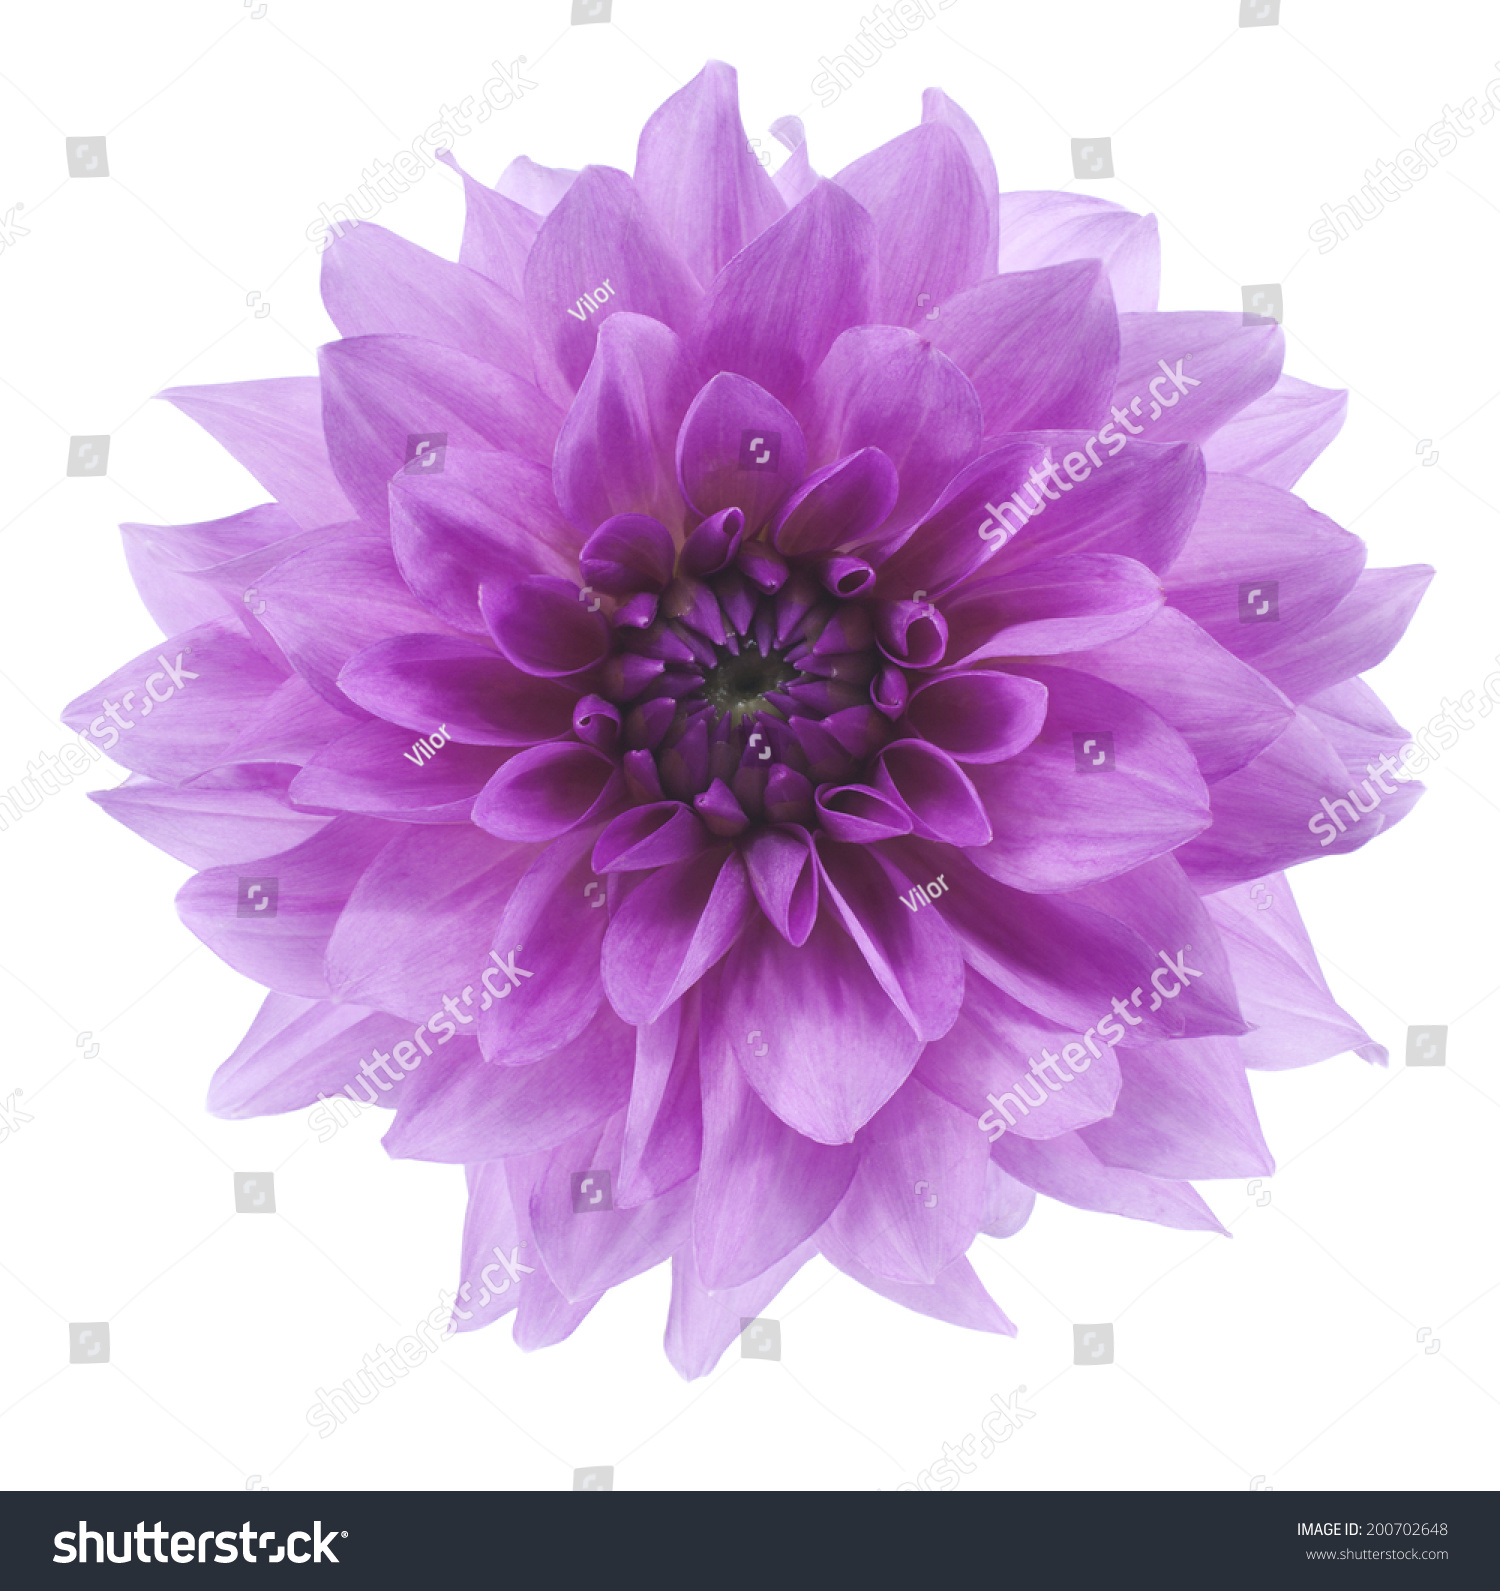 Studio Shot Of Blue Colored Dahlia Flower Isolated On White